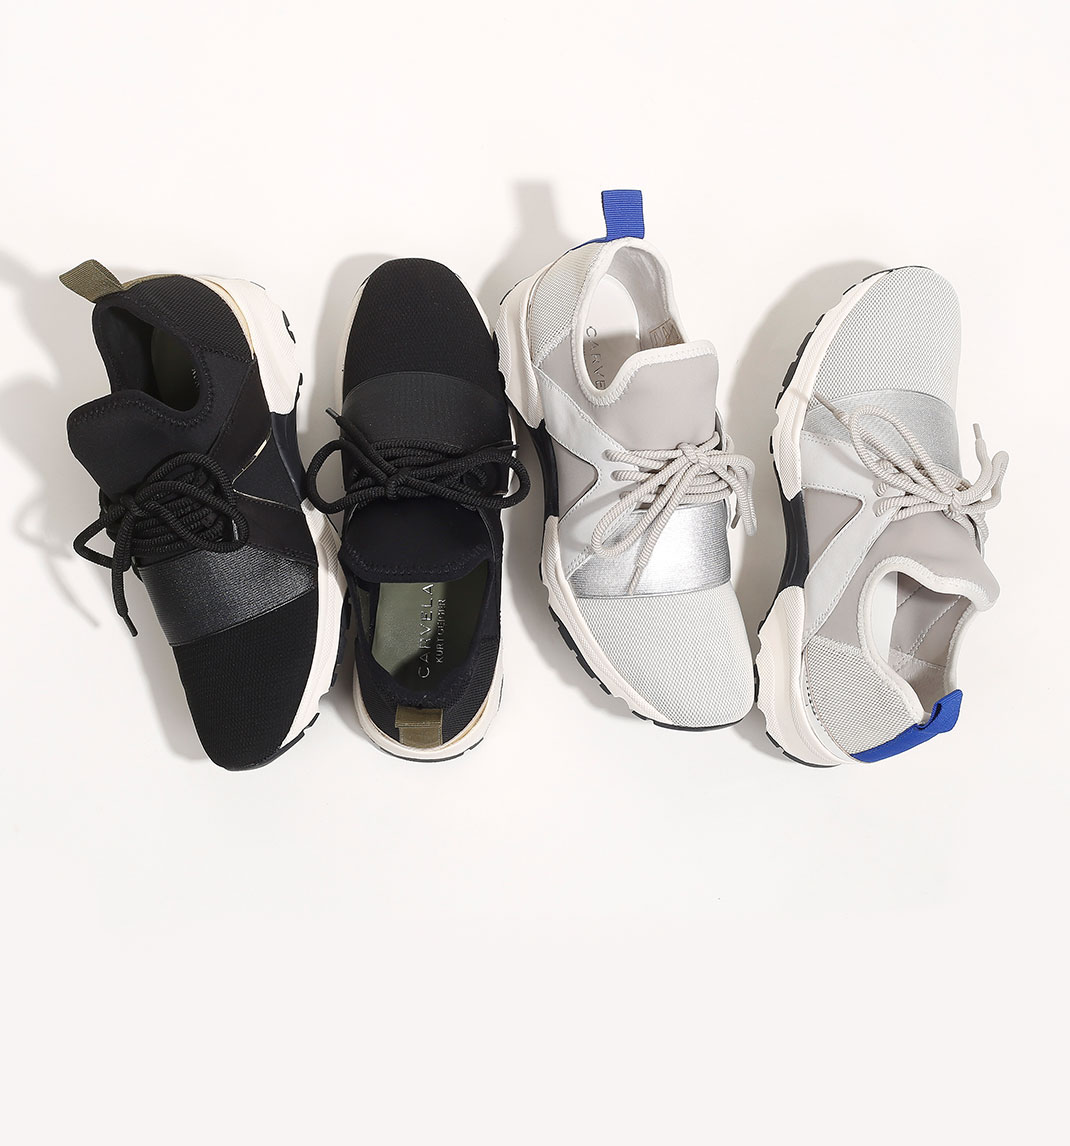 On Trend Trainers: Buy Now, Wear Now